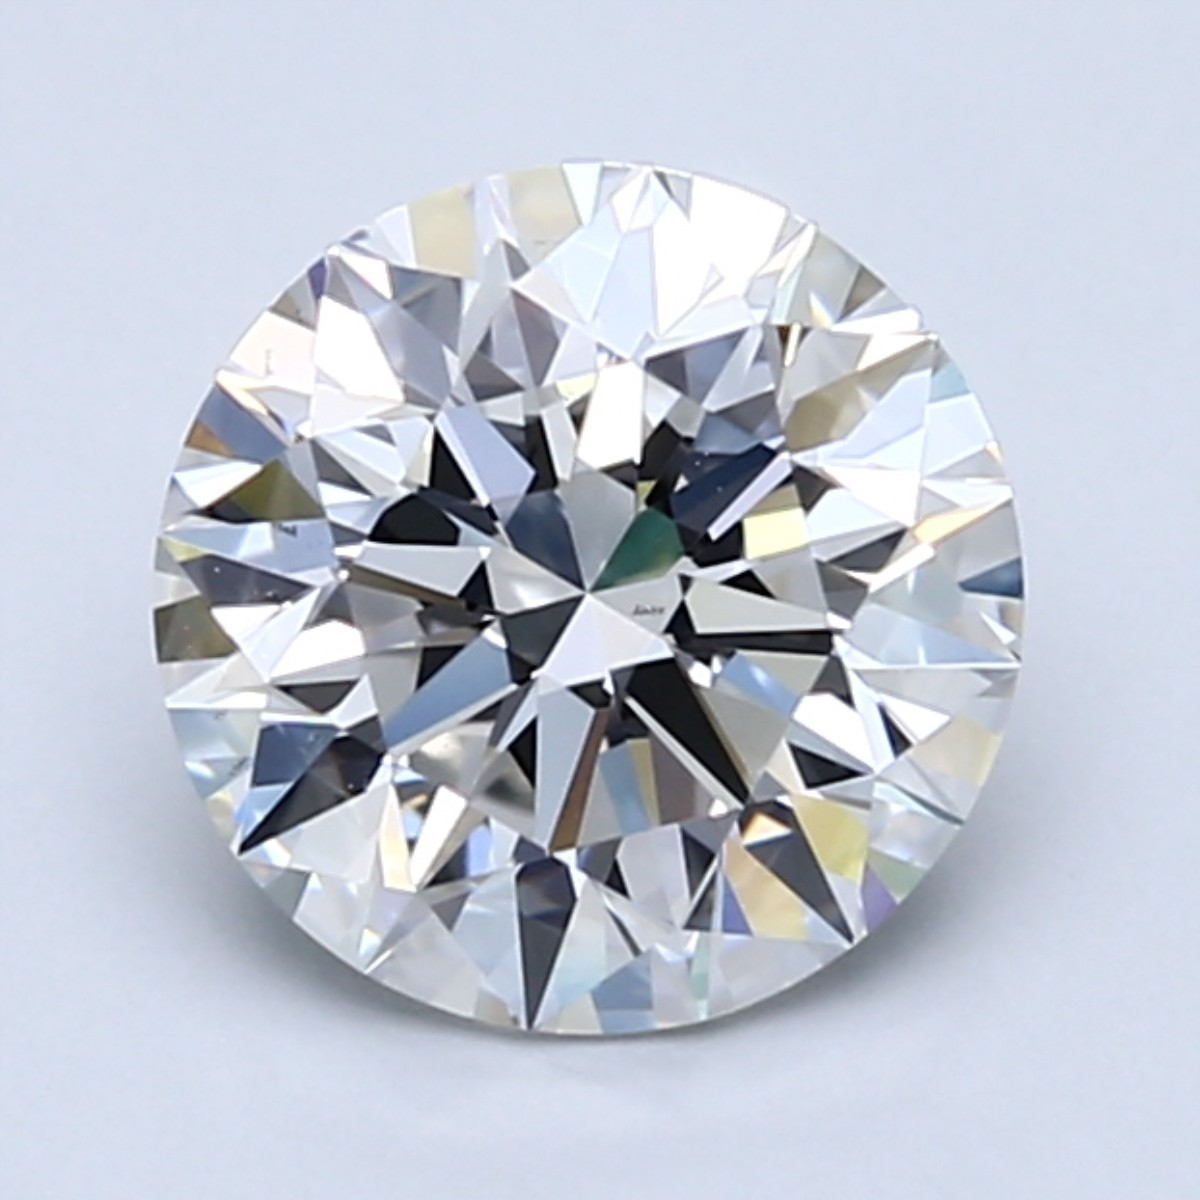 Round 1.9 Carat G Color VS2 Clarity For Sale